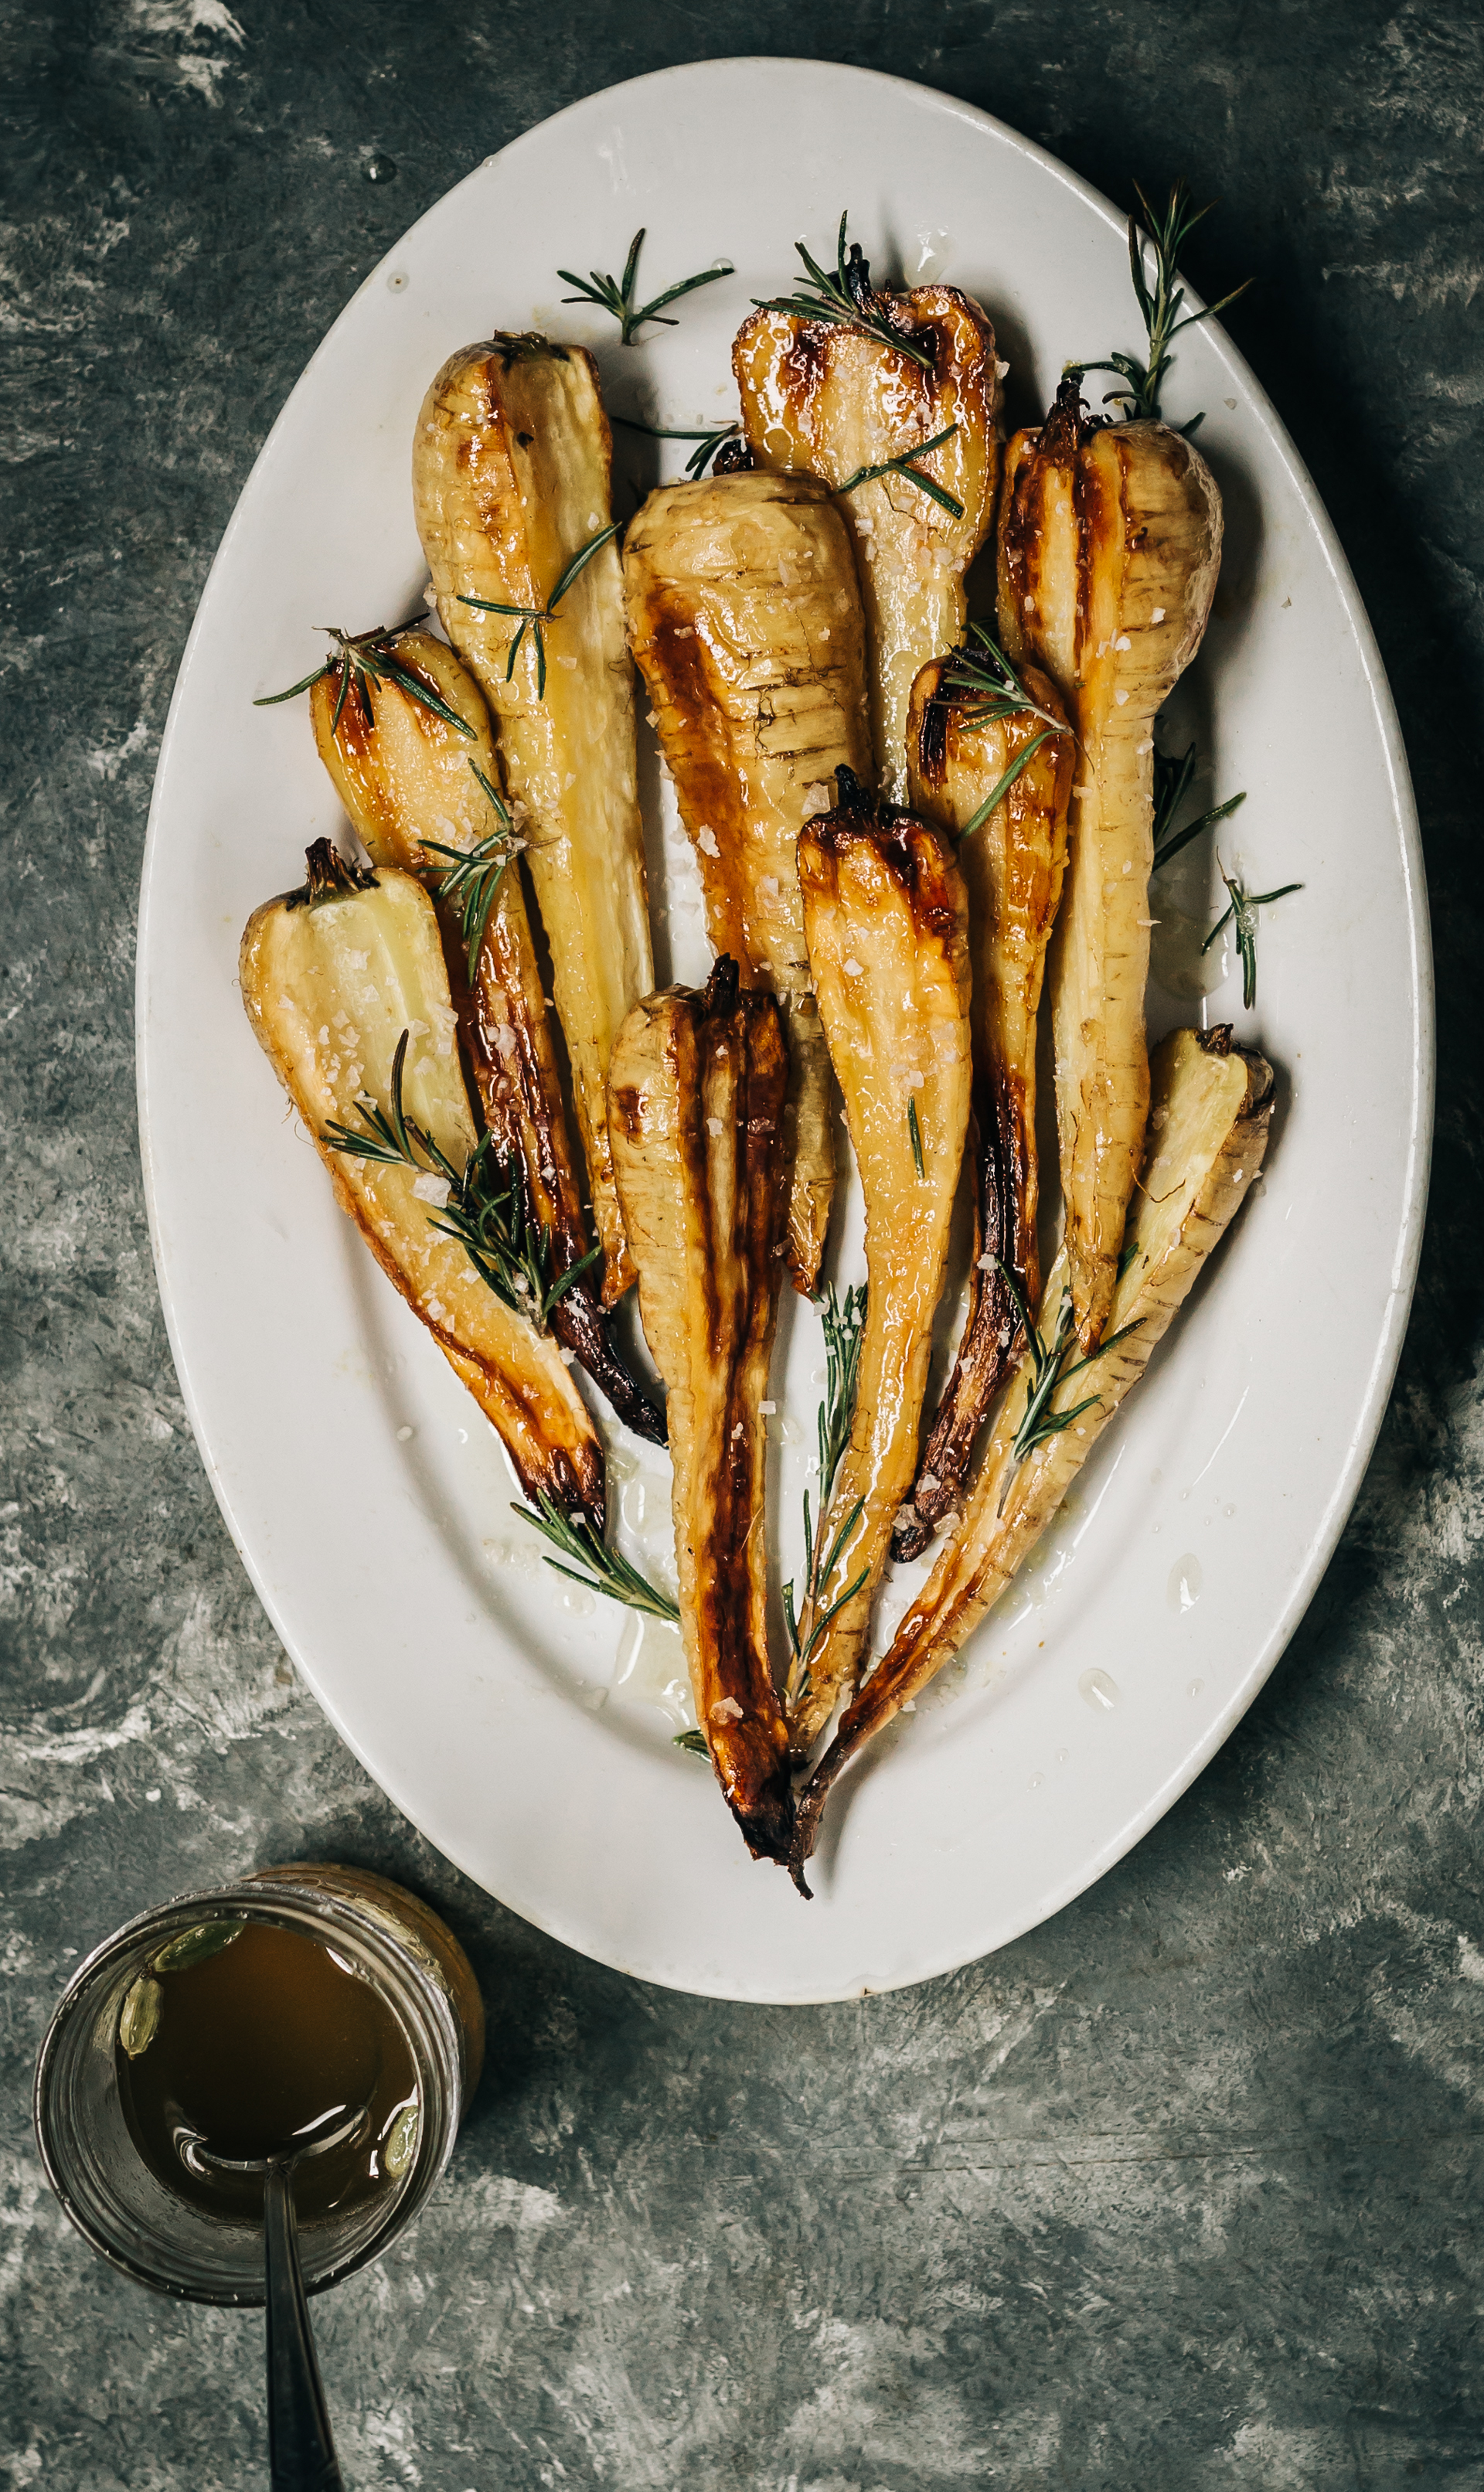 Honey and Cardamom Glazed Parsnips with Rosemary and Sea Salt